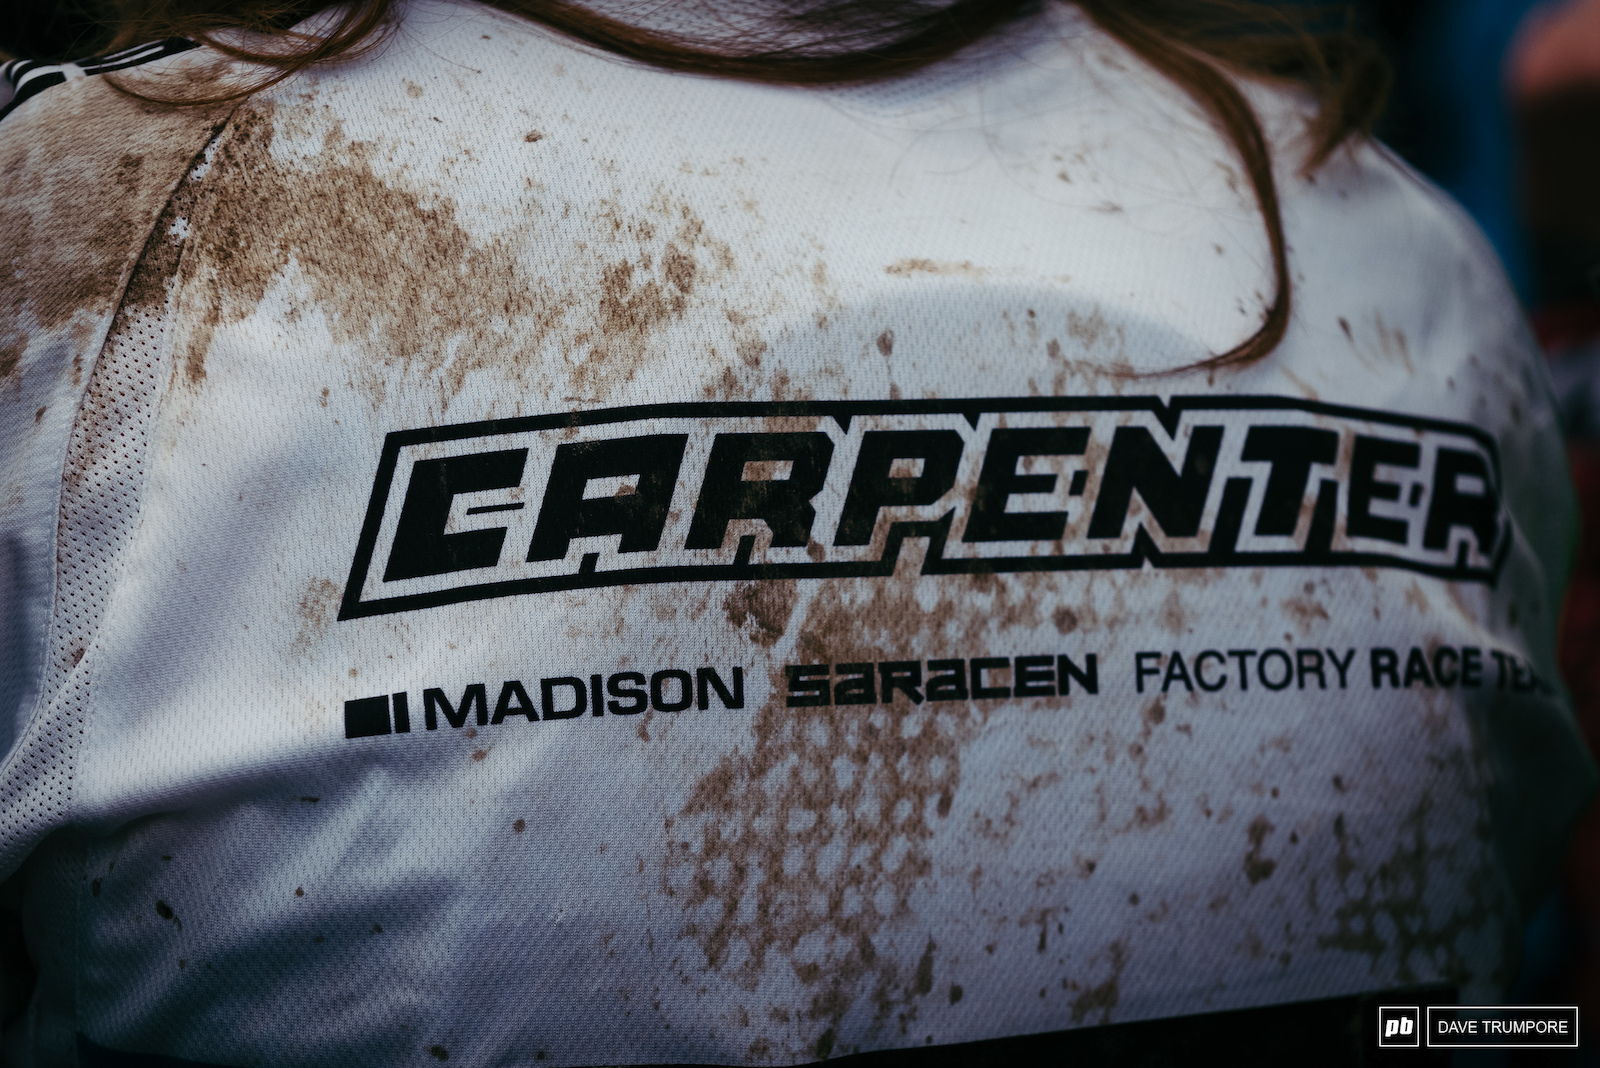 The dirt on the back of the jersey tells the tale of the day for Manon Carpenter - 2015